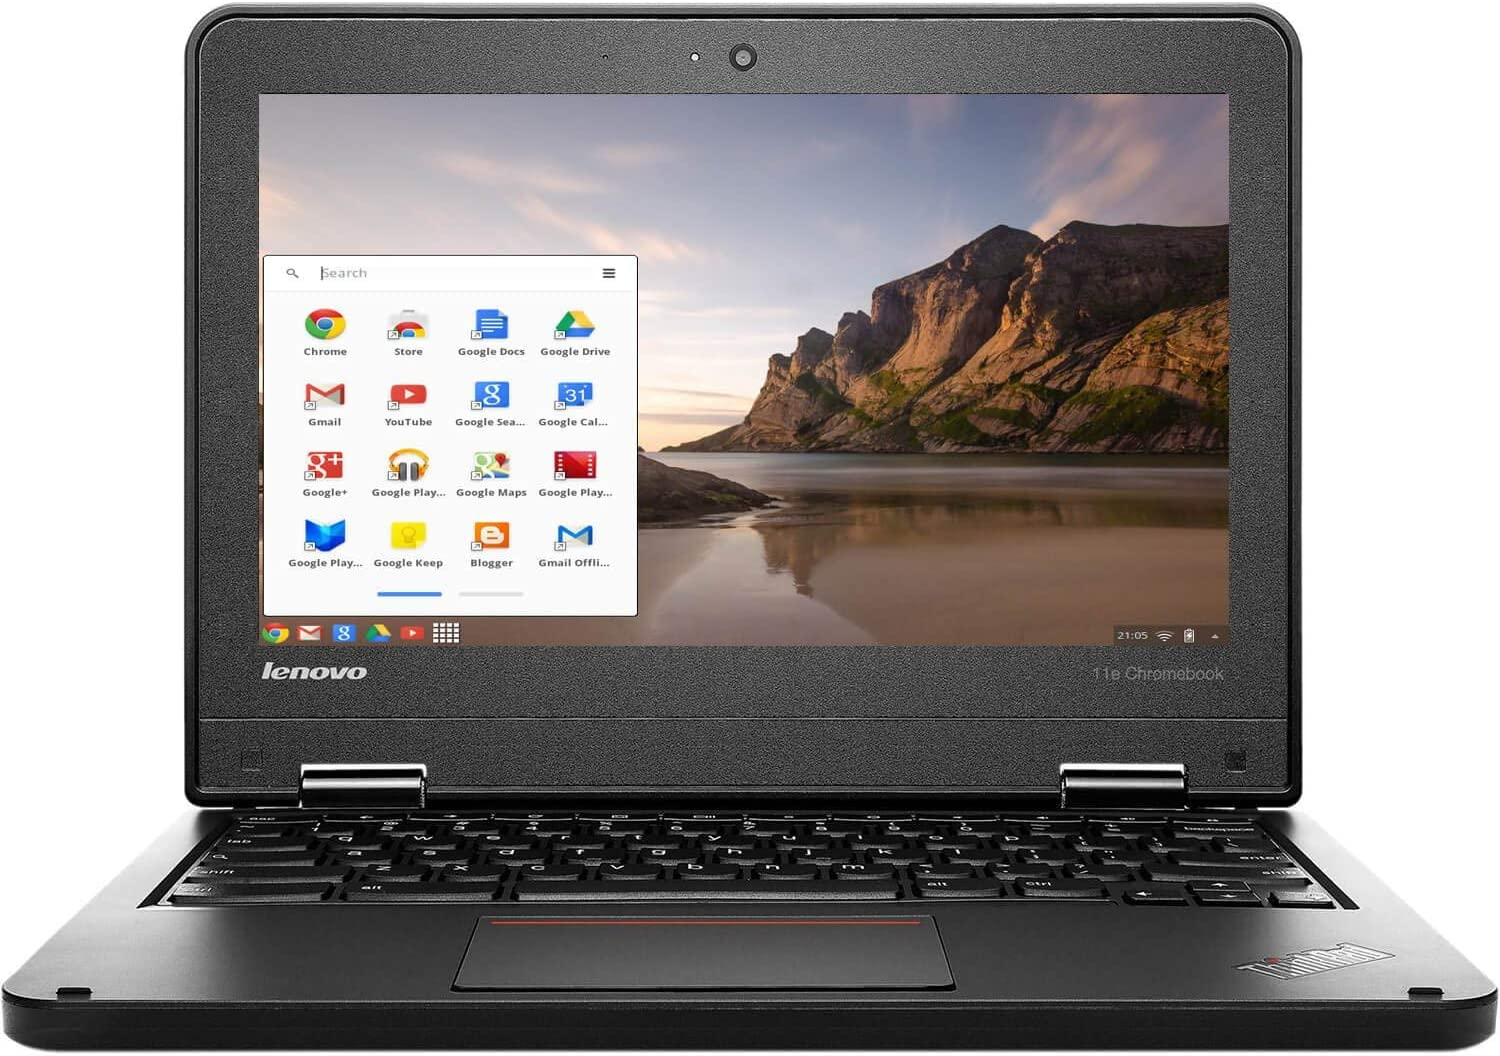 "Lenovo ThinkPad 11e 11.6"" LED Chromebook Laptop Intel Celeron N2930 Quad Core 1.83GHz 16GB 4GB (Renewed)"